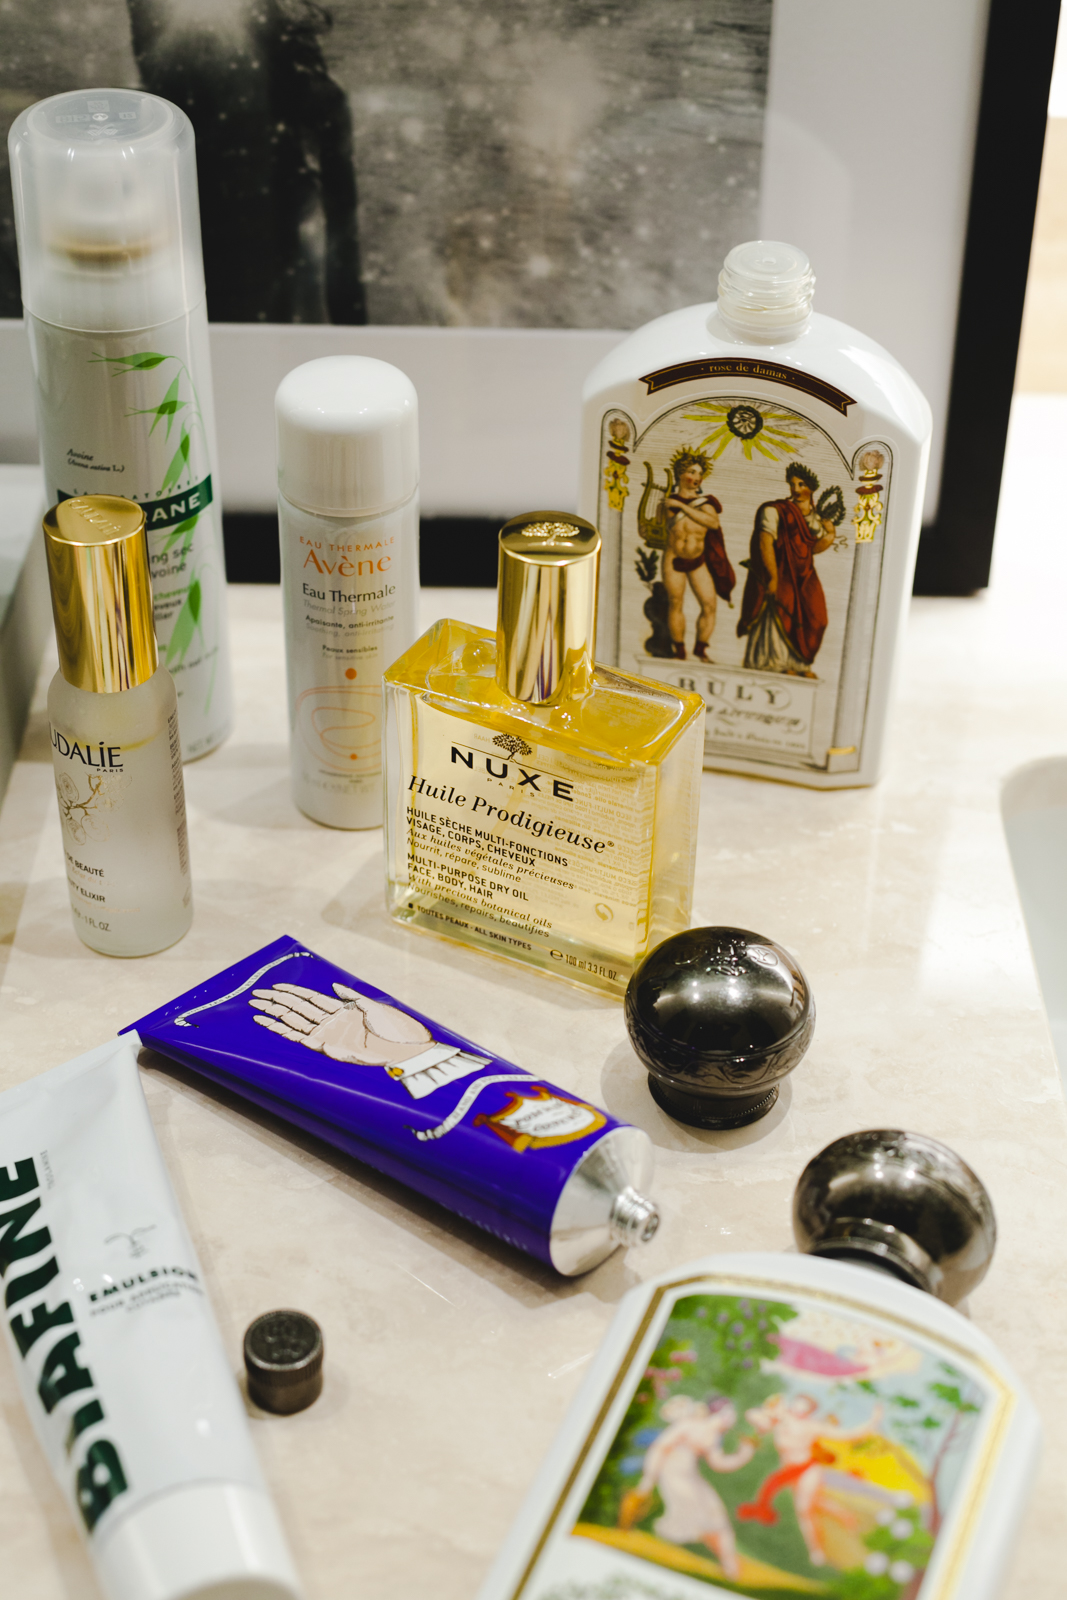 French Pharmacy beauty products